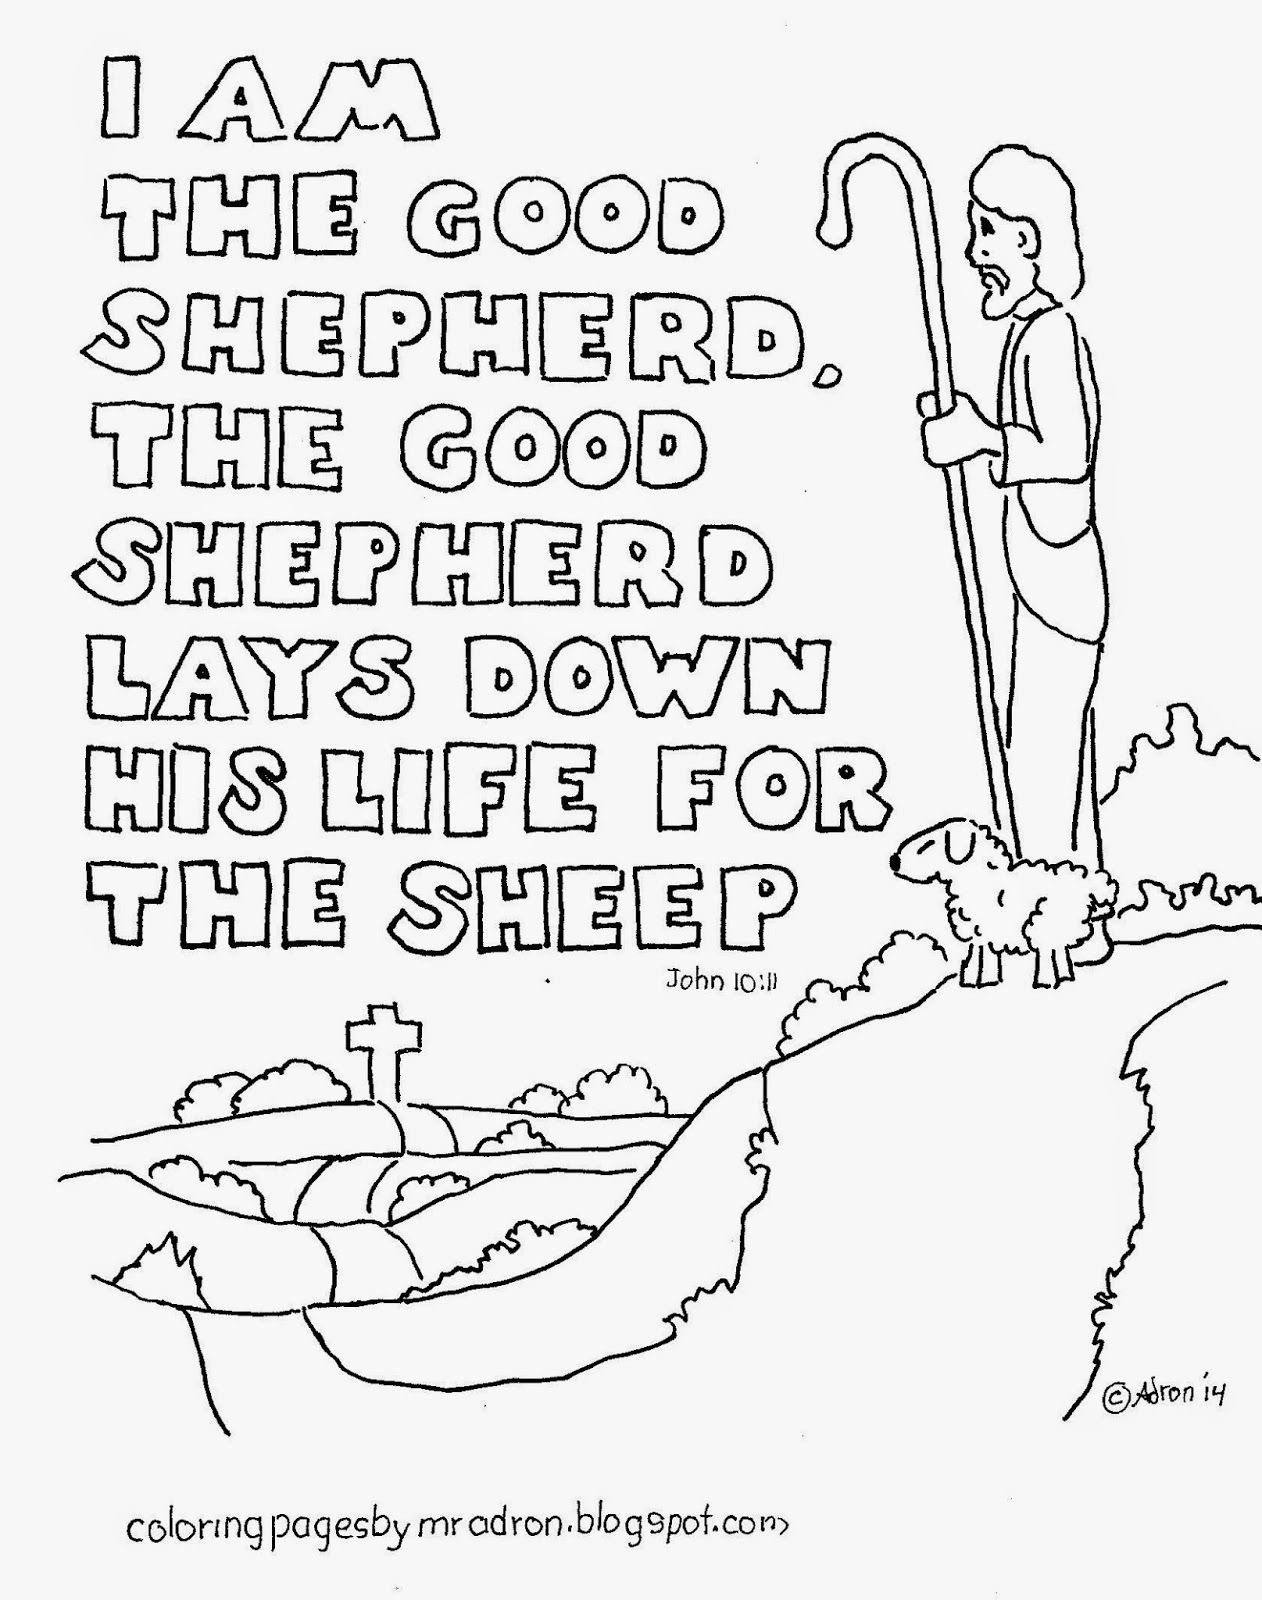 I Am The Good Shepherd Free Bible Verse Coloring Page The Good